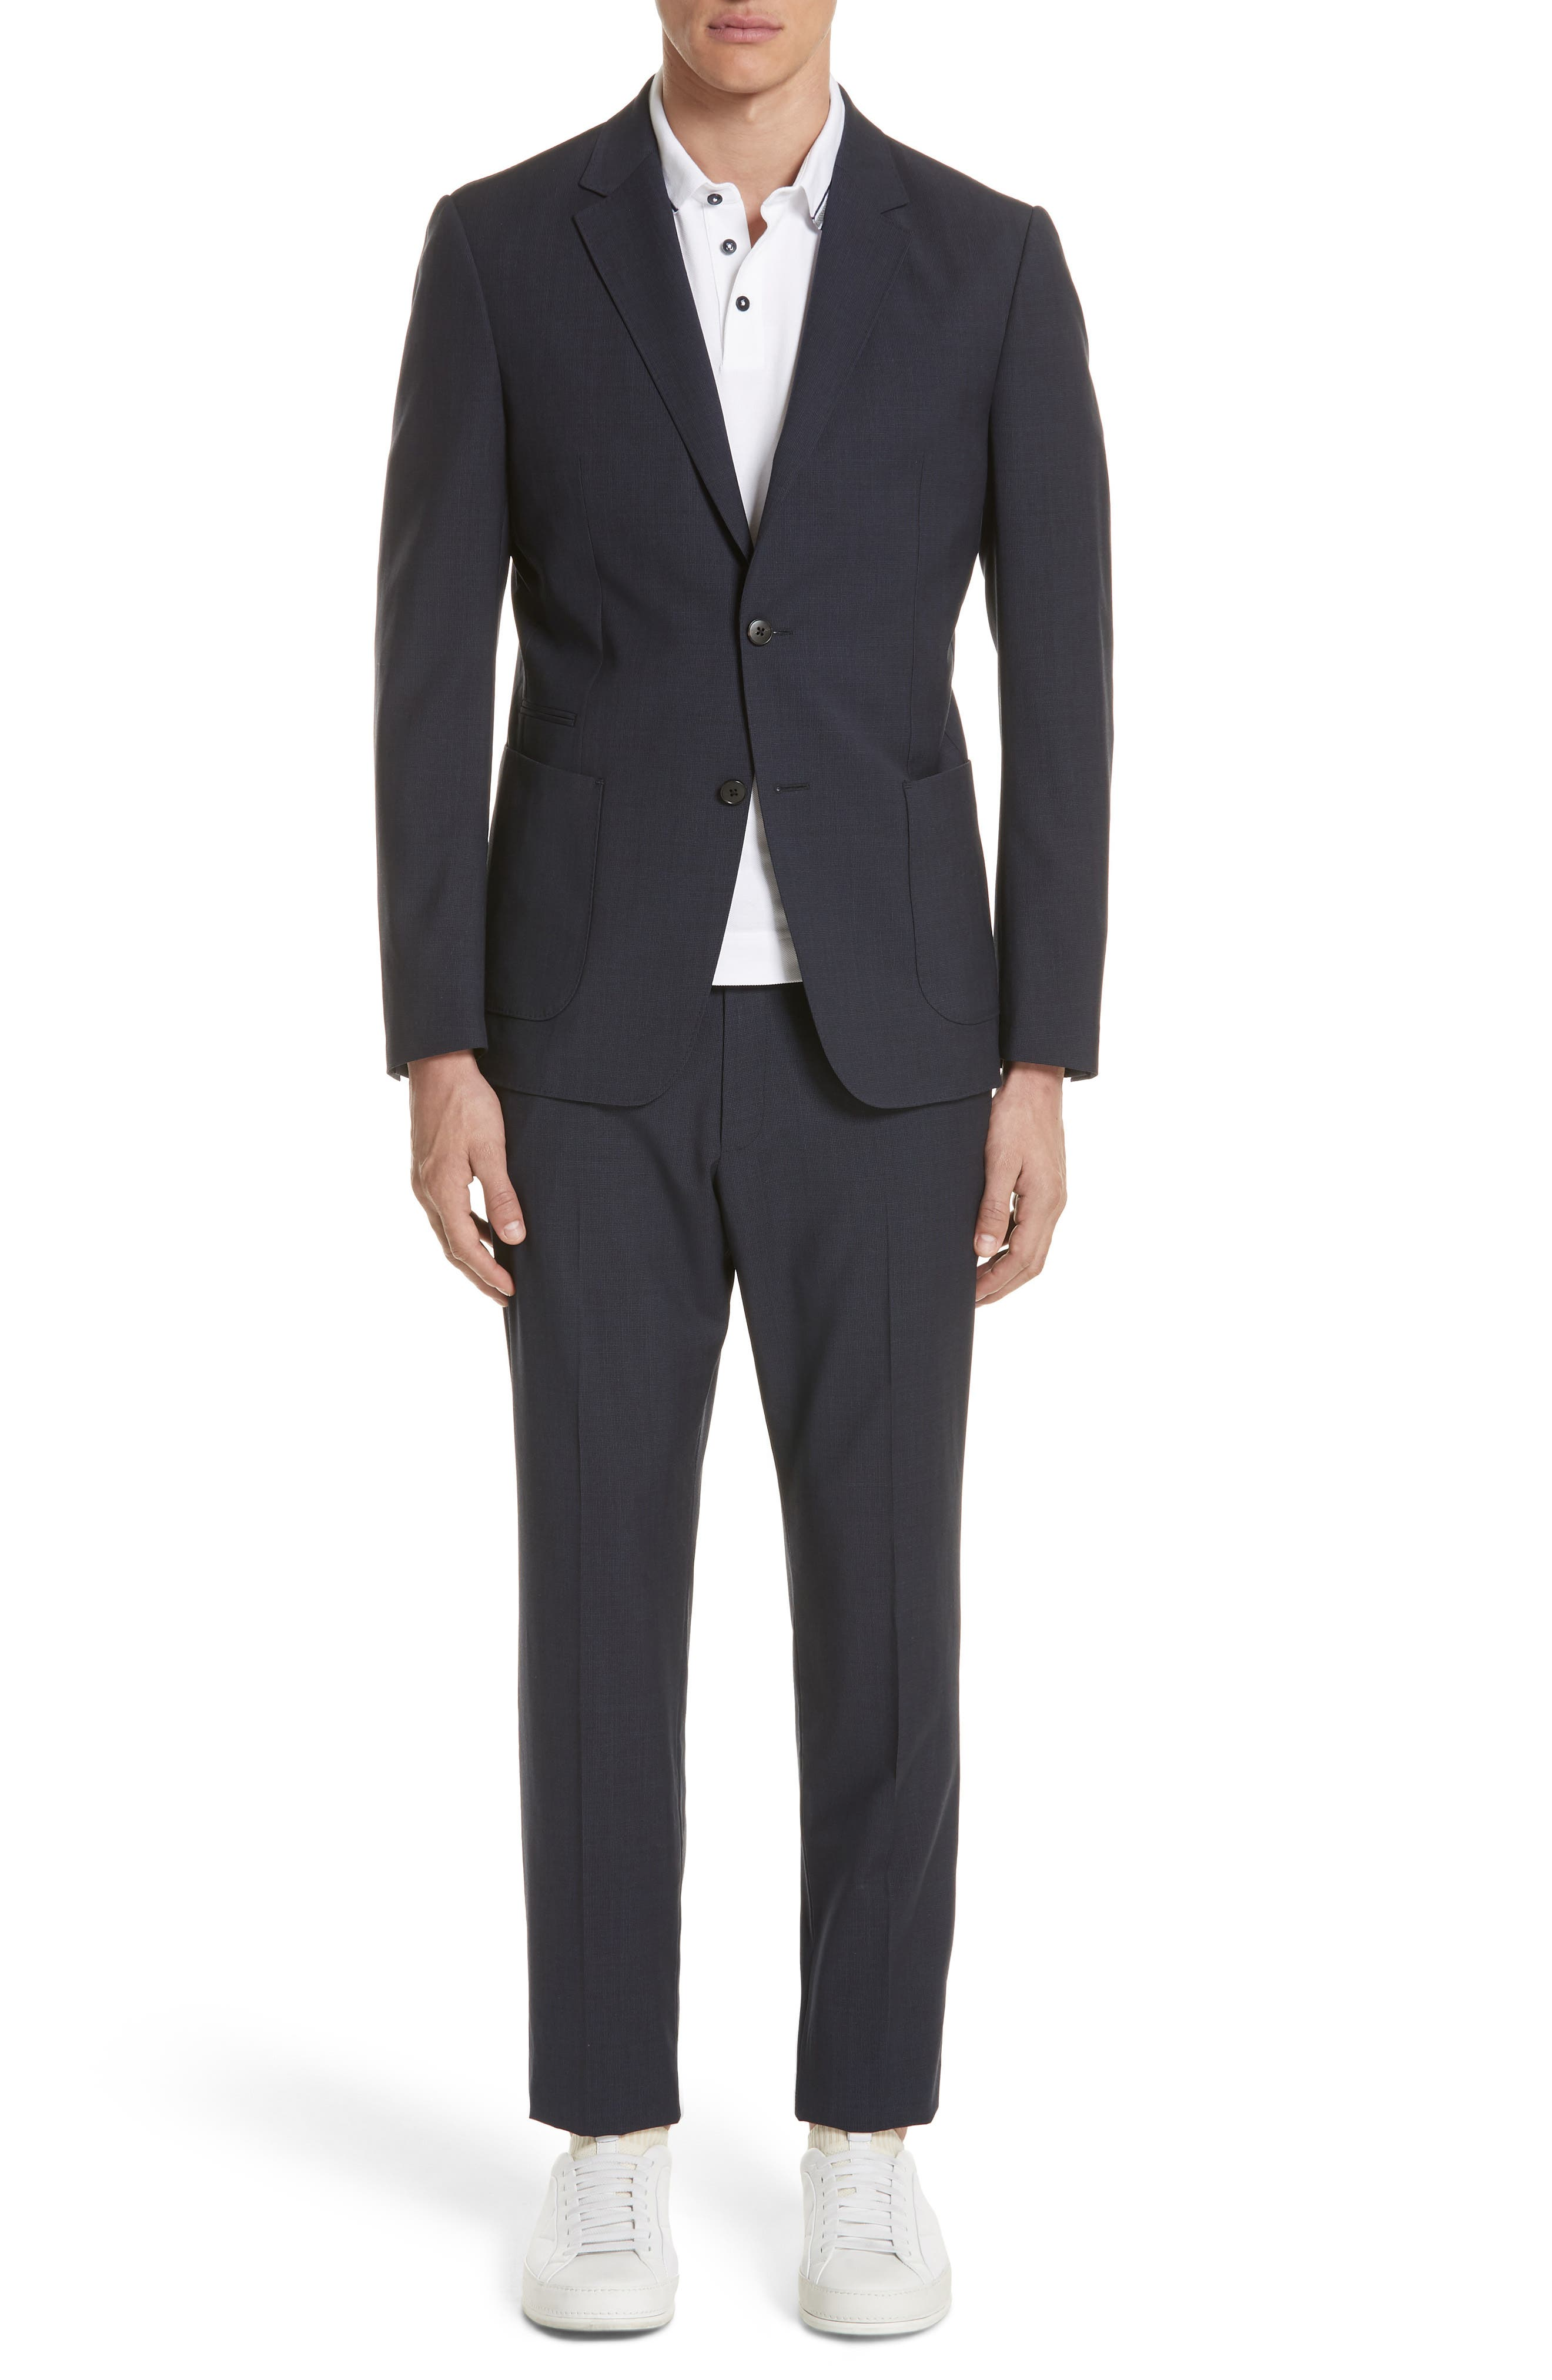 TECHMERINO<sup>™</sup> Wash & Go Trim Fit Solid Wool Suit,                         Main,                         color, 412